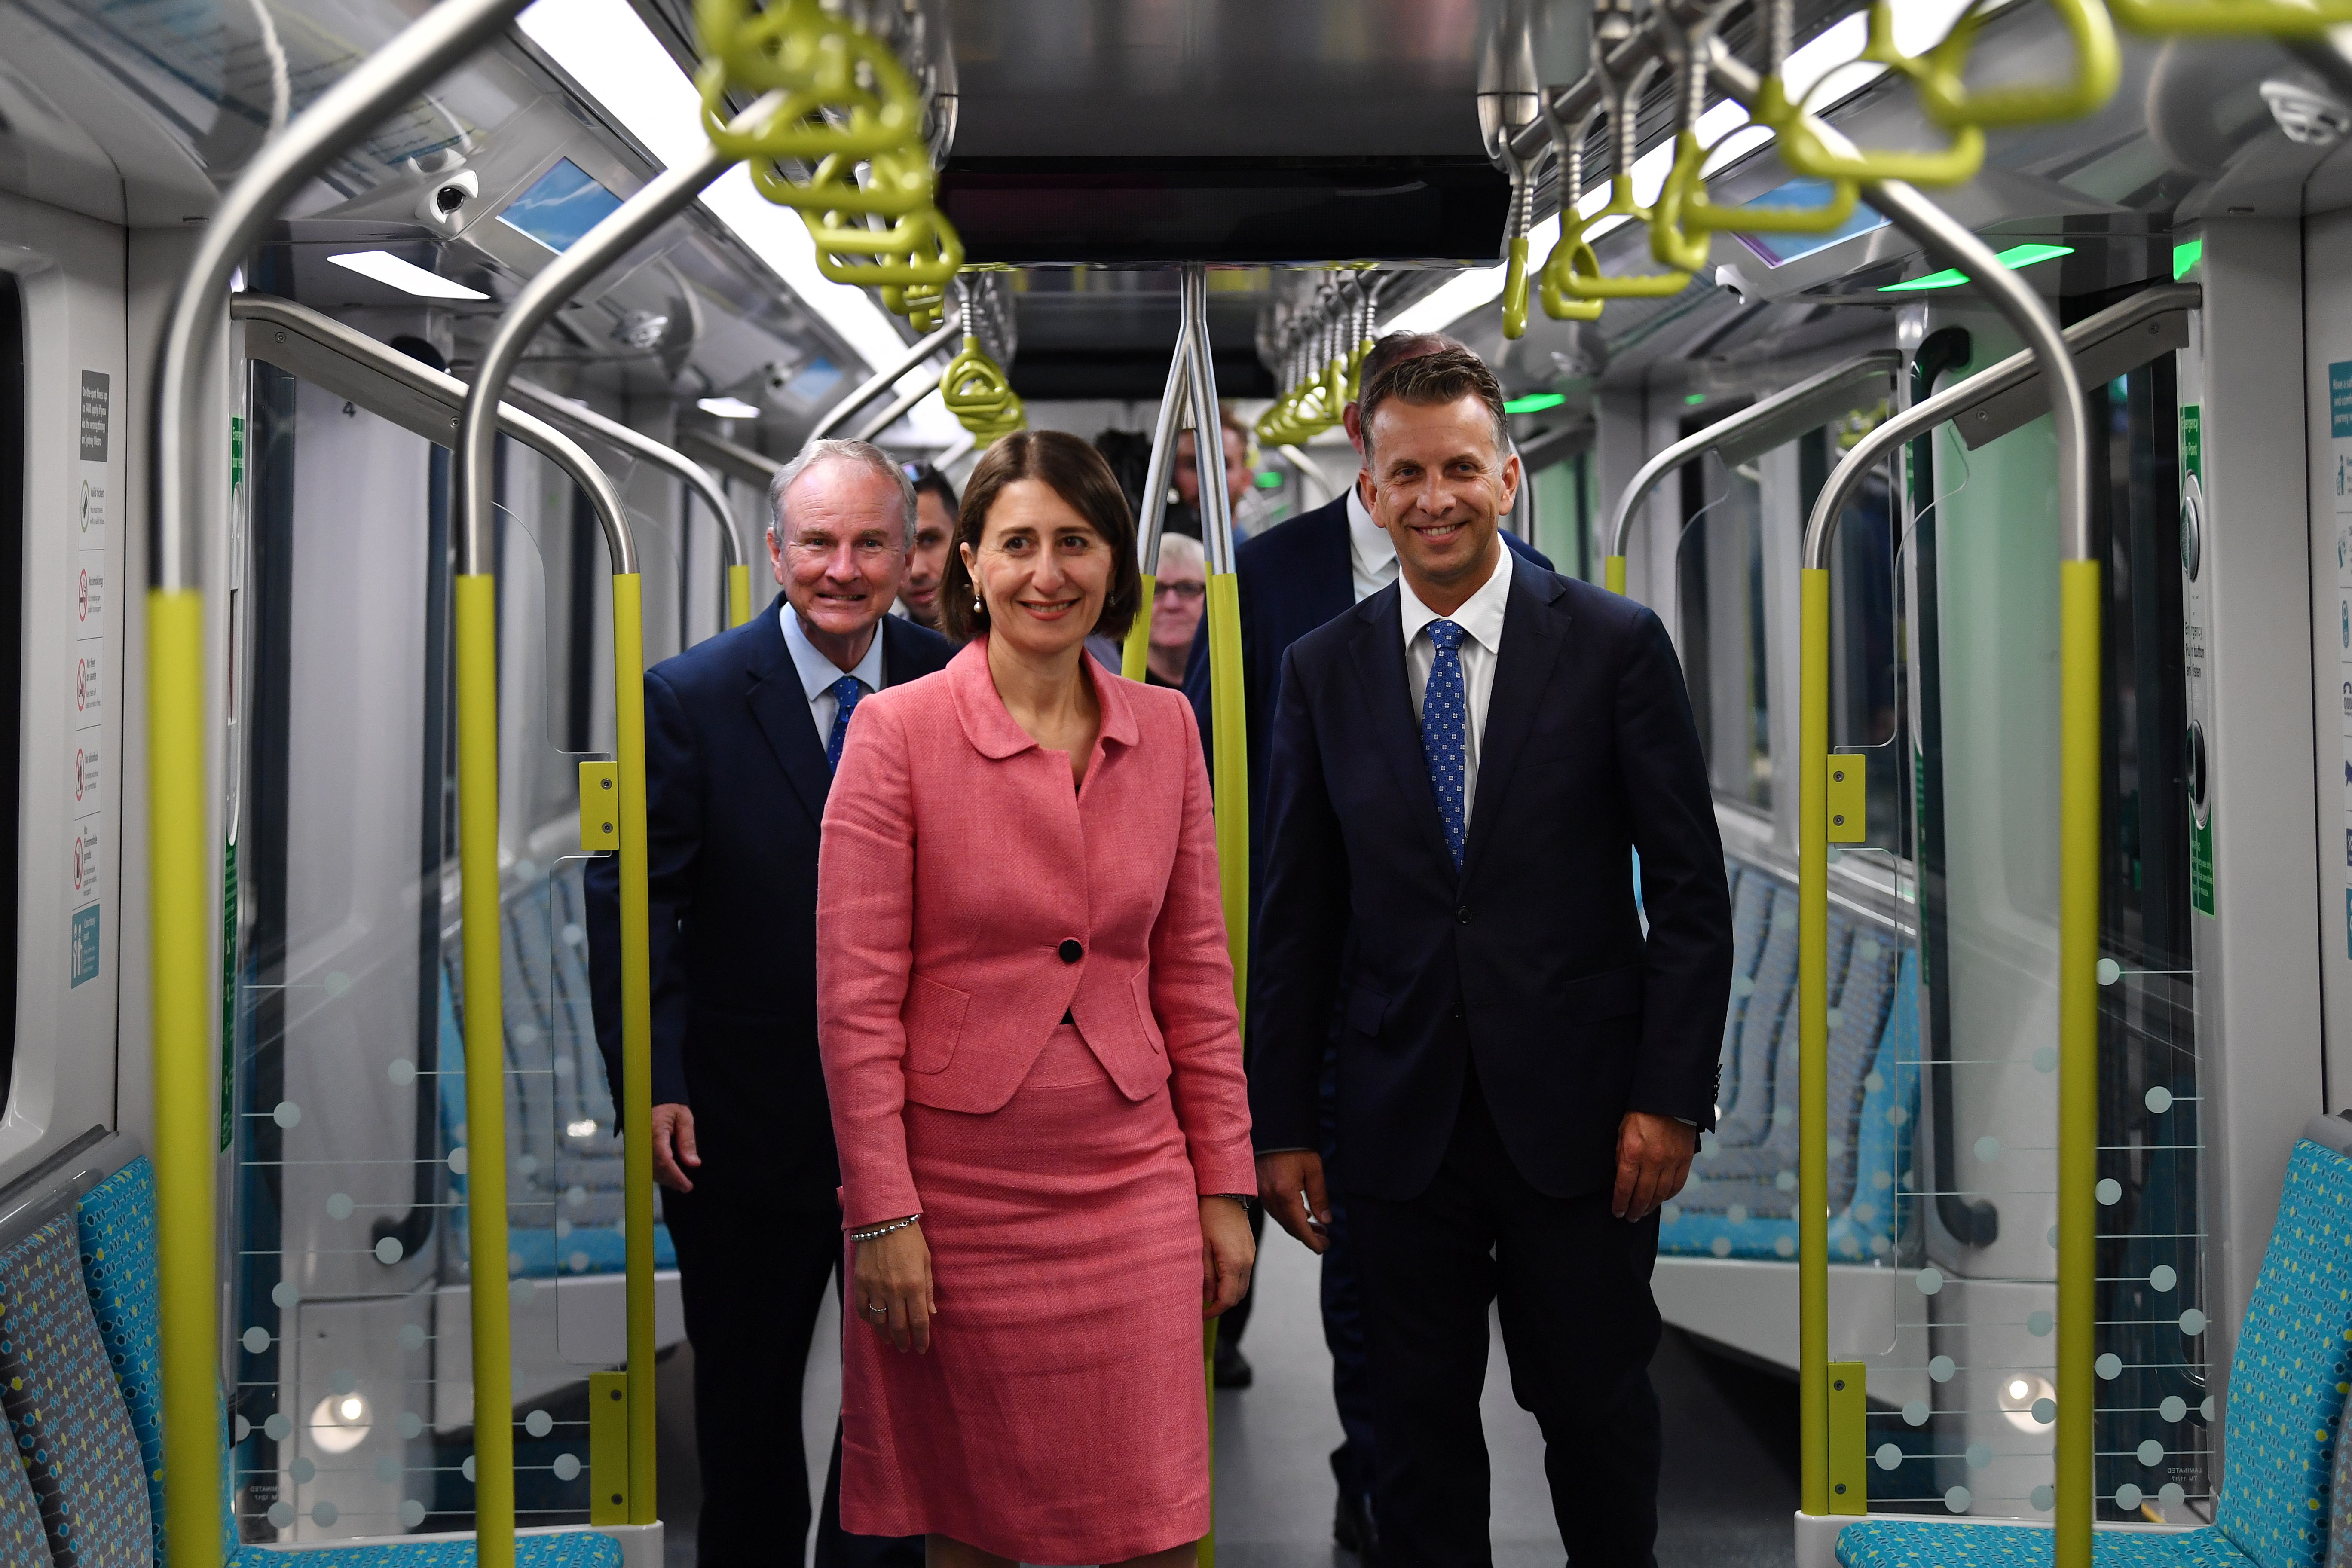 NSW Premier's 'sentimental' voyage on Metro line